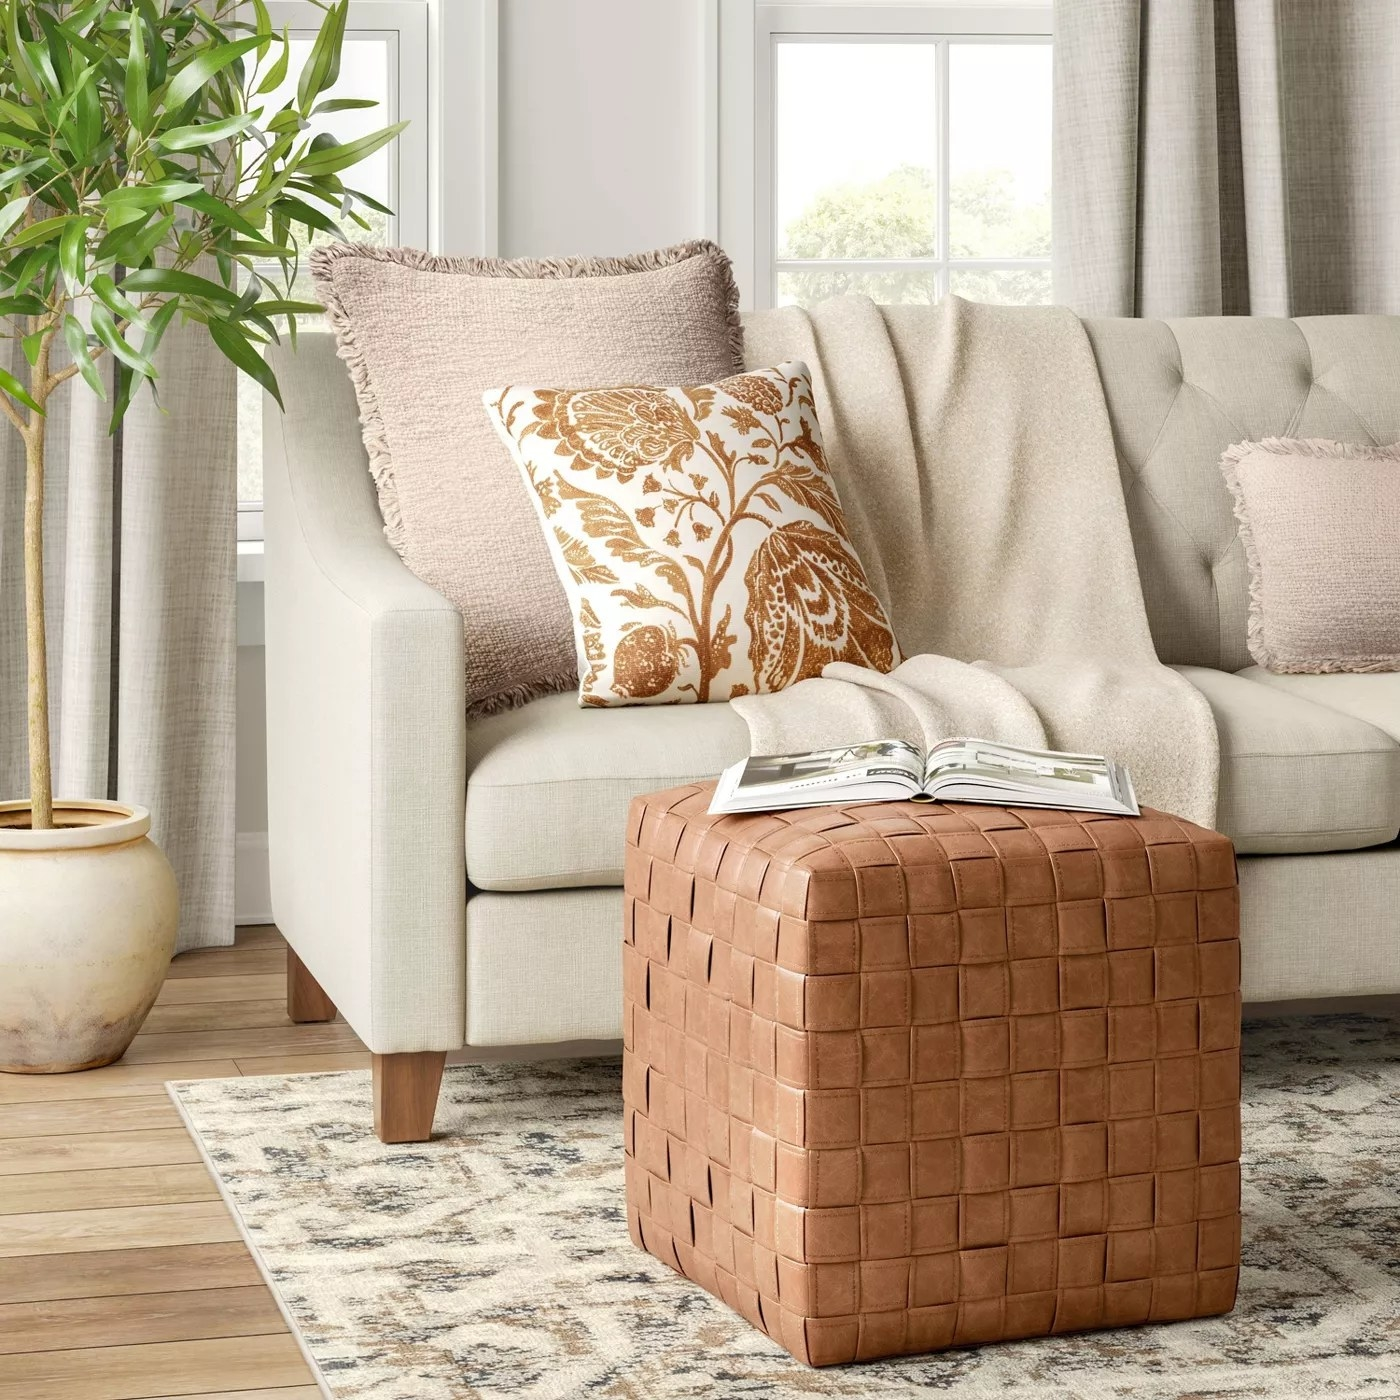 The square cube with a woven texture in a living room